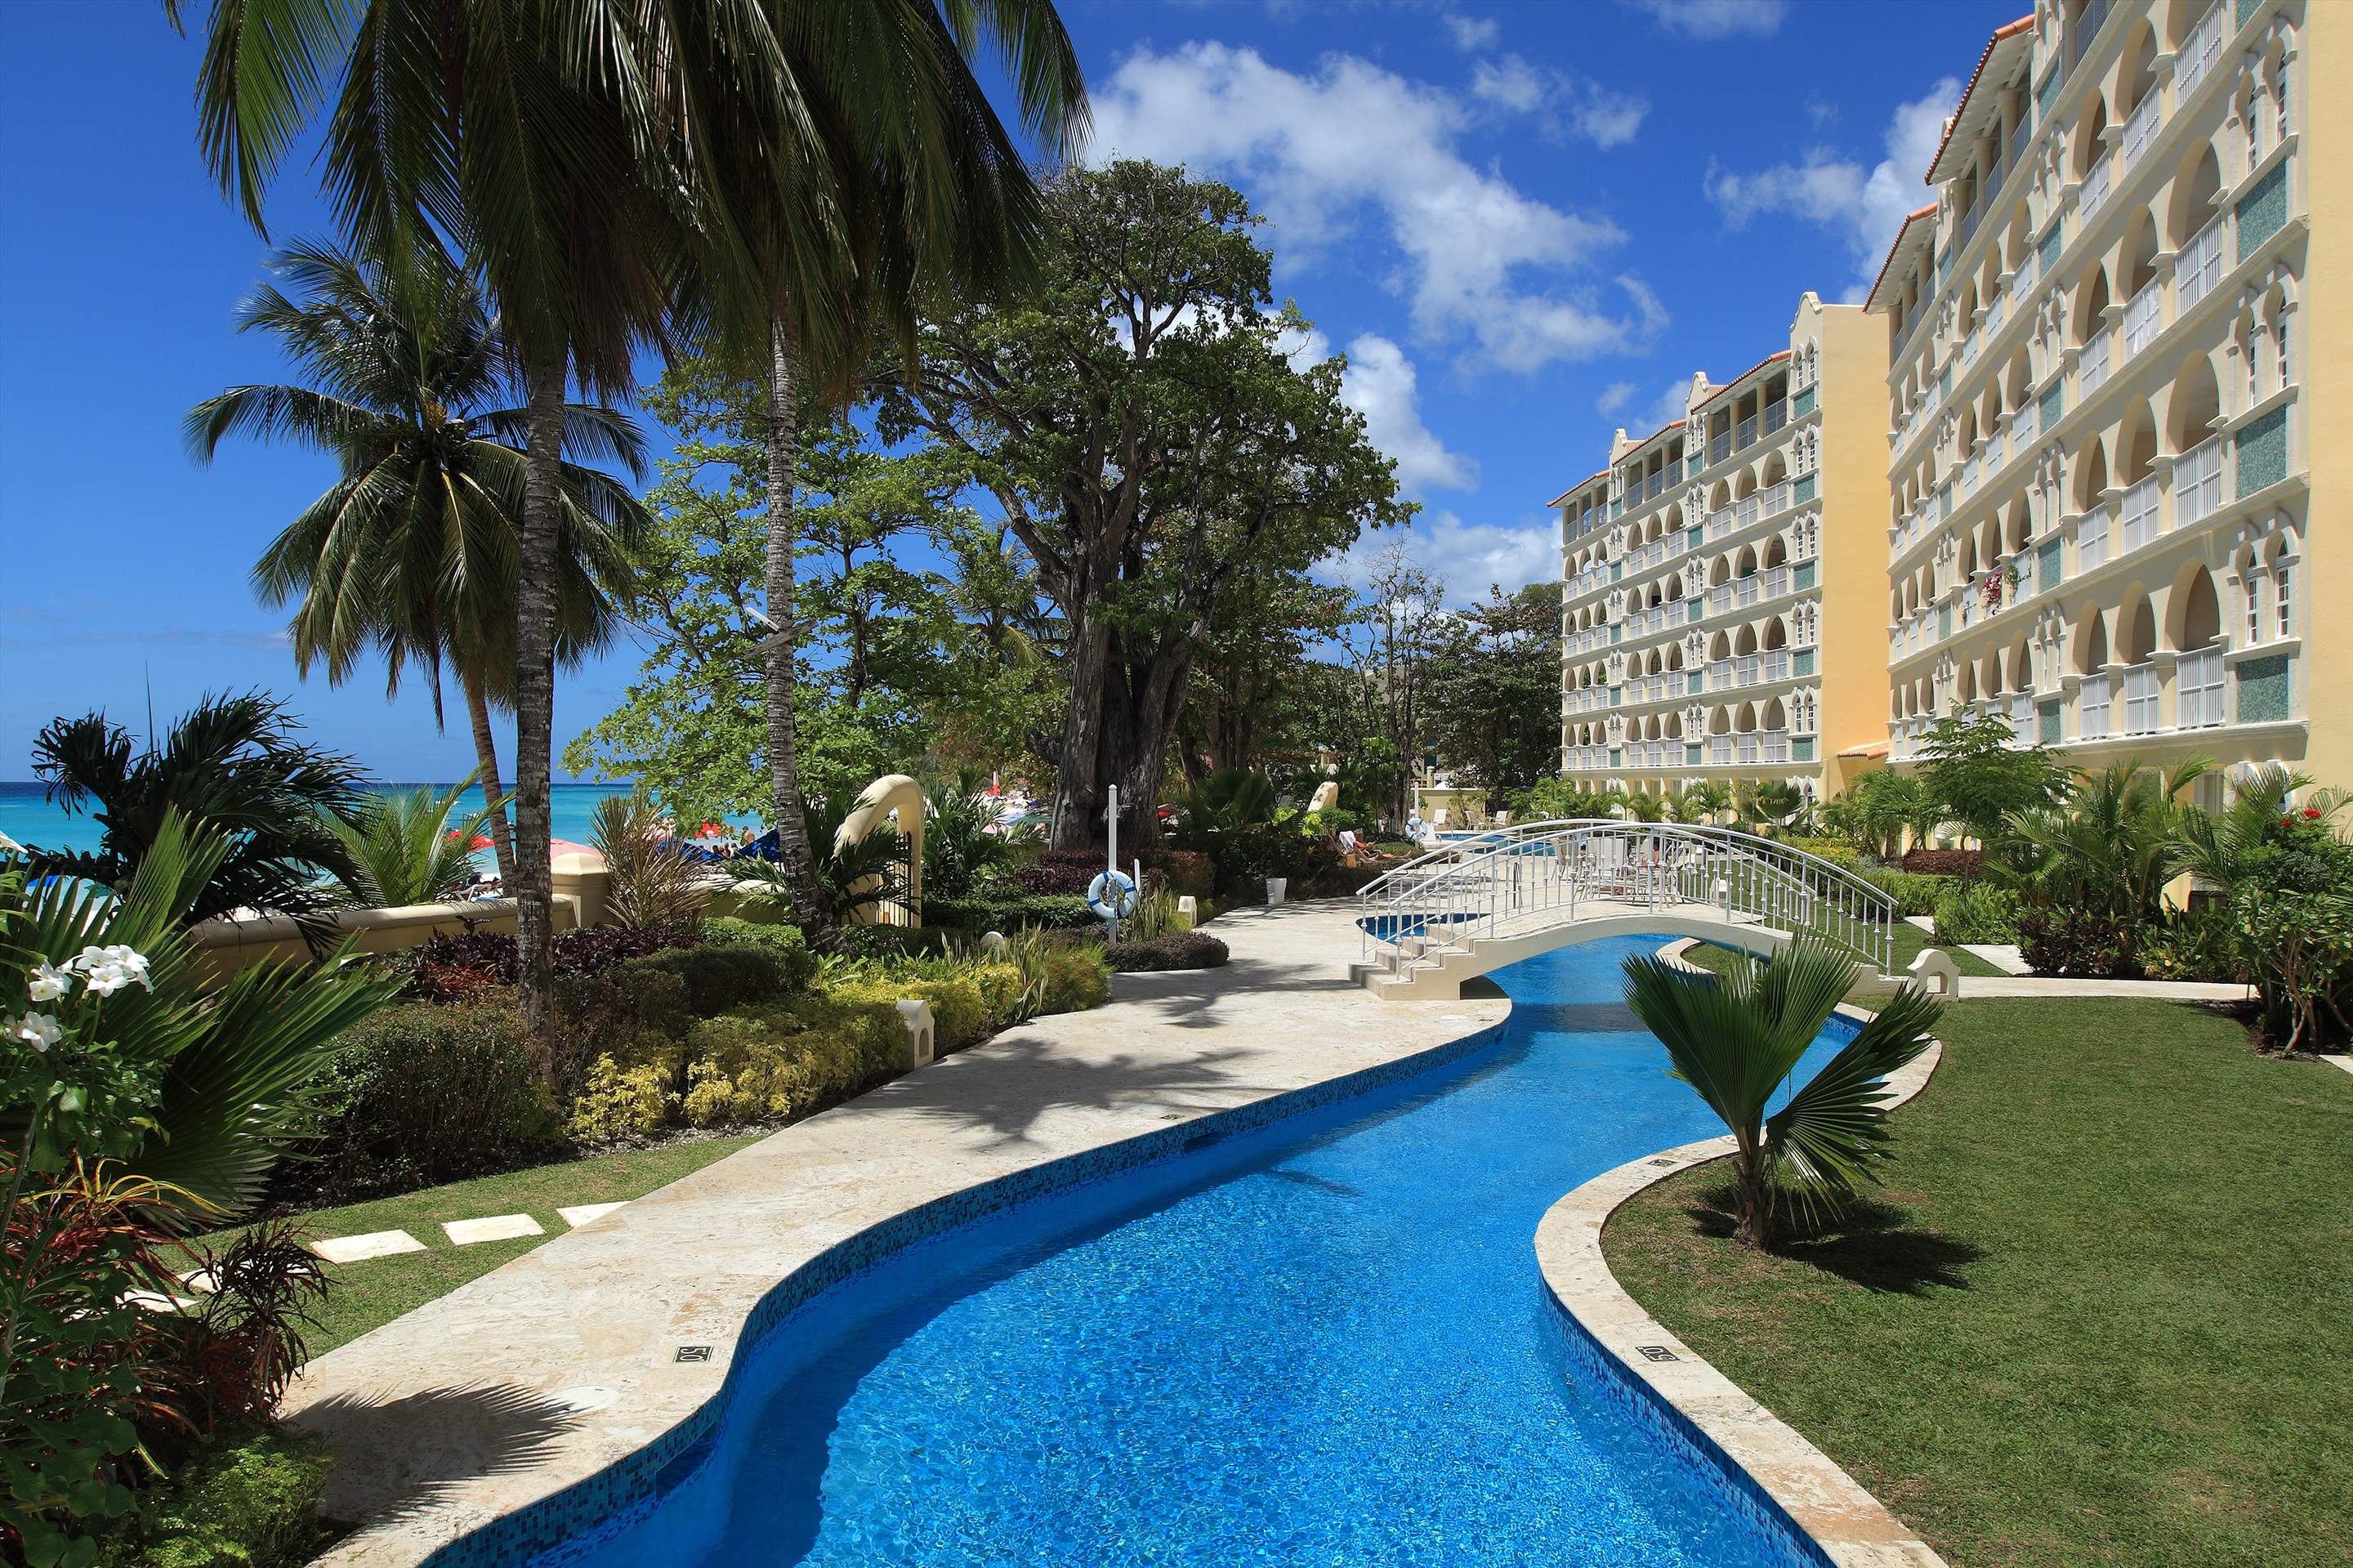 Sapphire Beach 309, 2 bedroom, 2 bedroom apartment in St. Lawrence Gap & South Coast, Barbados